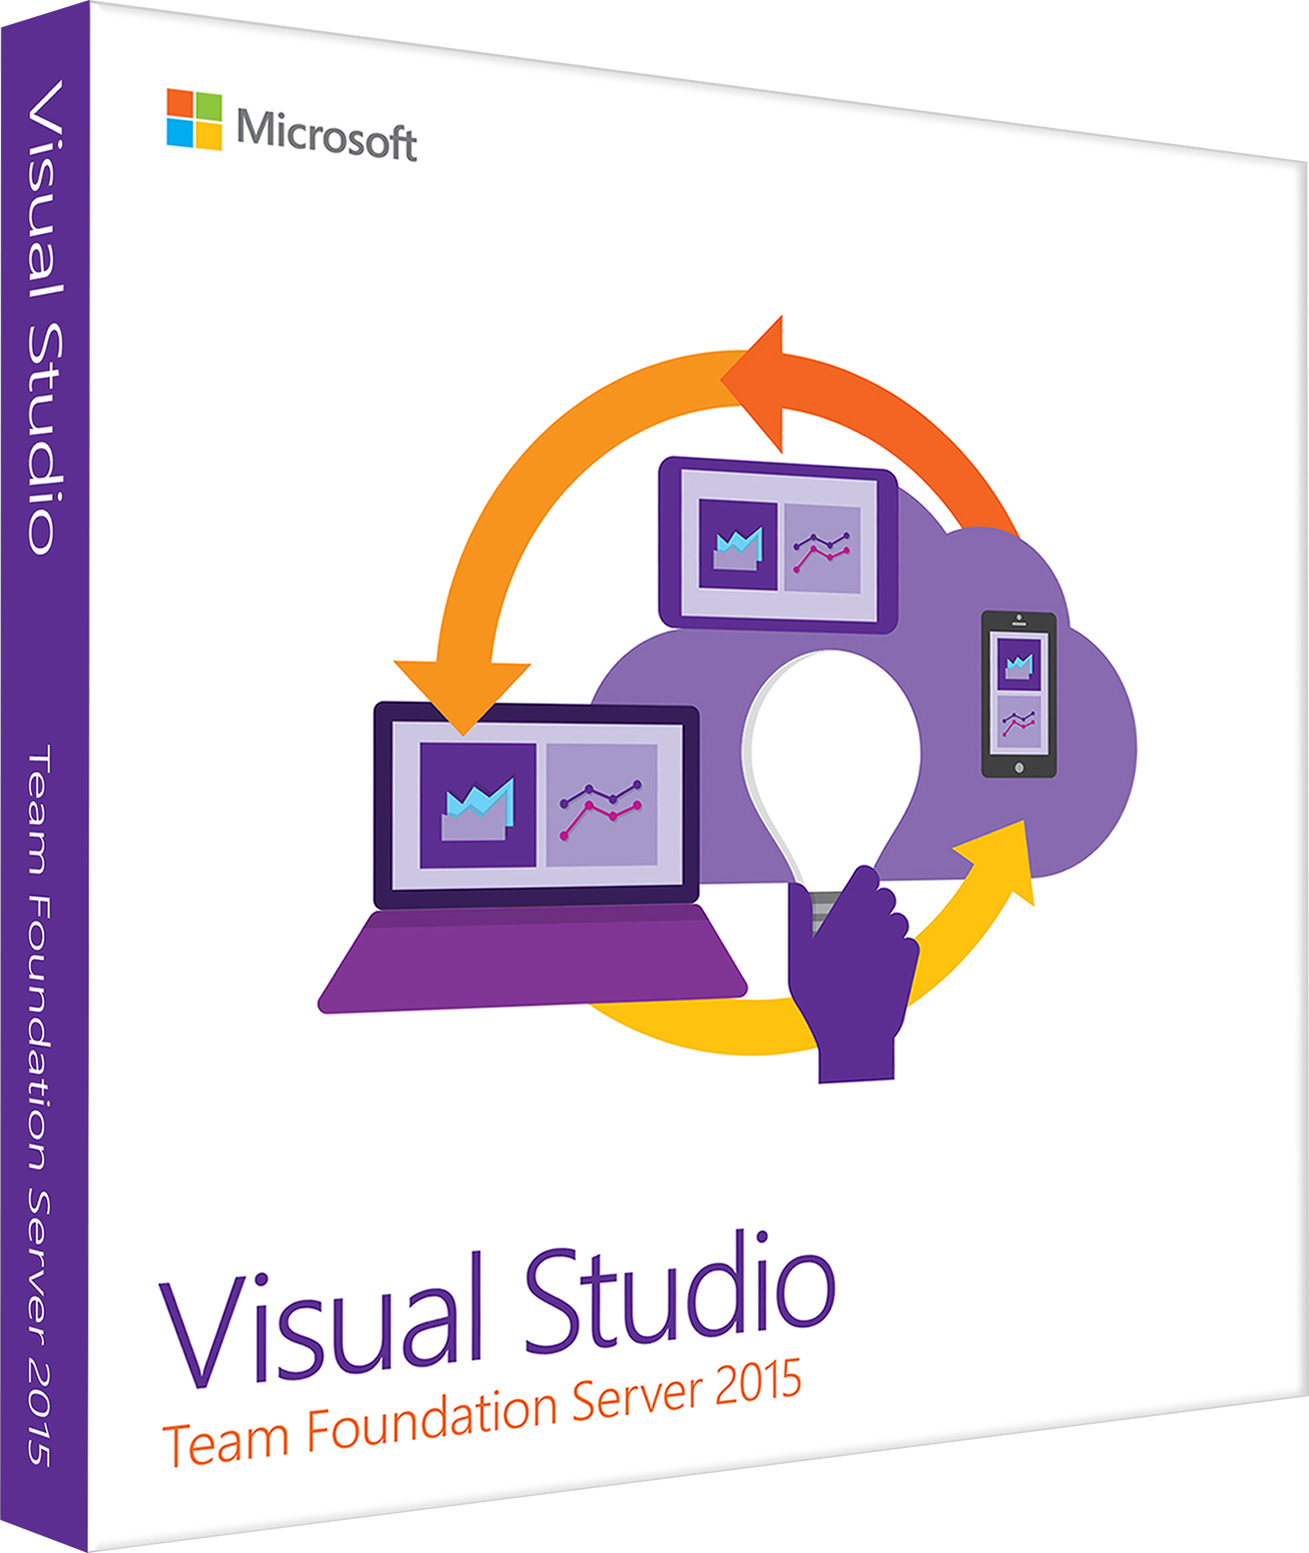 Visual Studio Team Foundation Server 2015